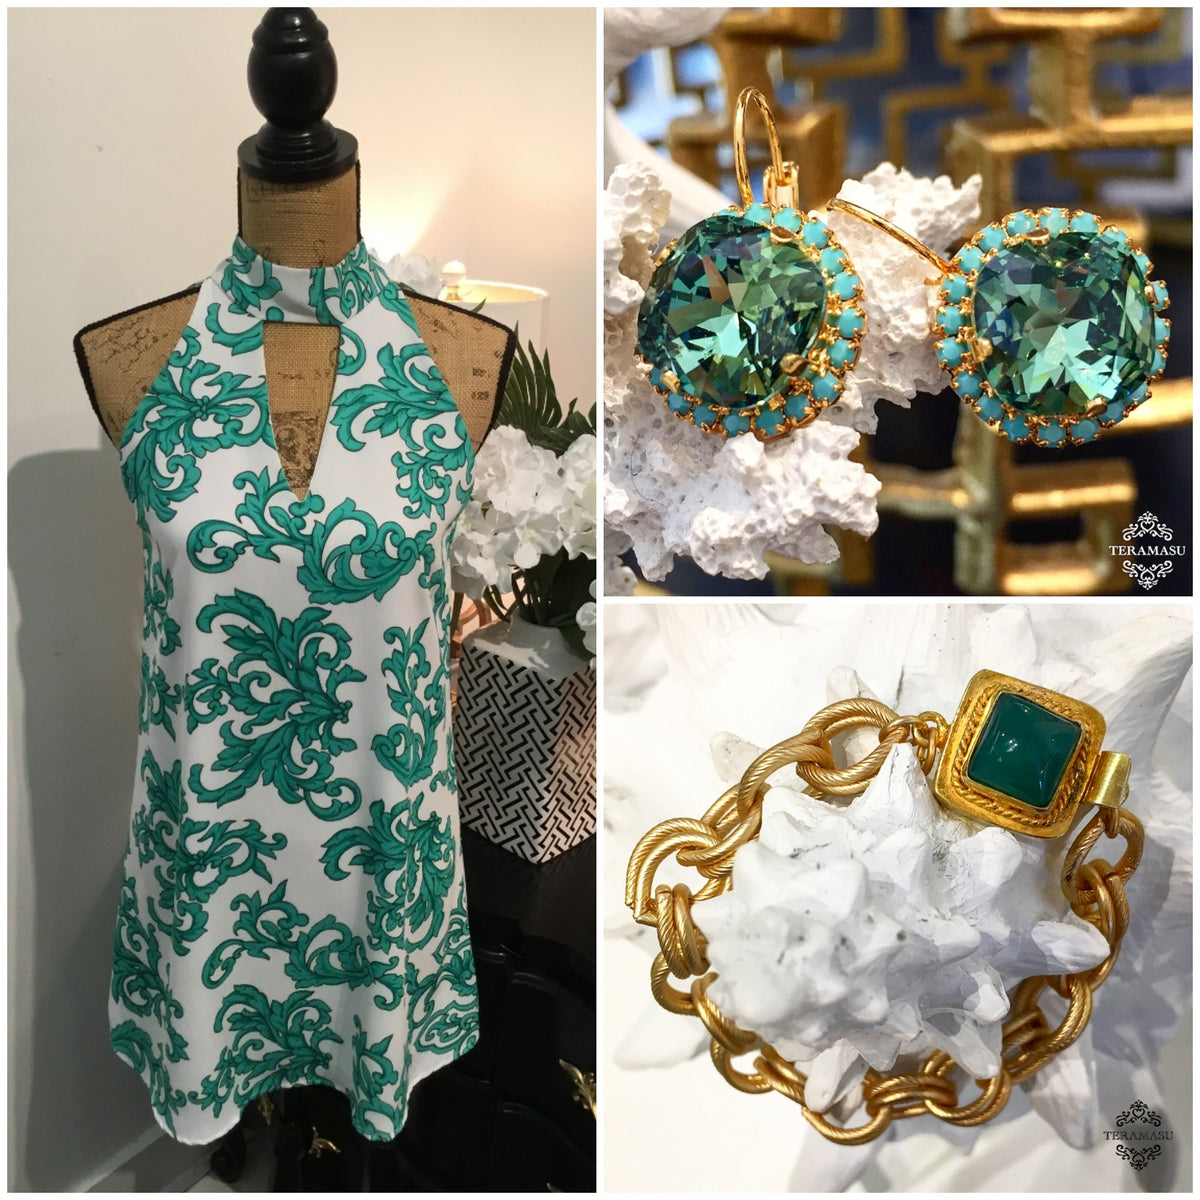 Fashion Friday: Chic & One-of-a-Kind, Green Outfit Inspiration for Summer to Fall from Teramasu